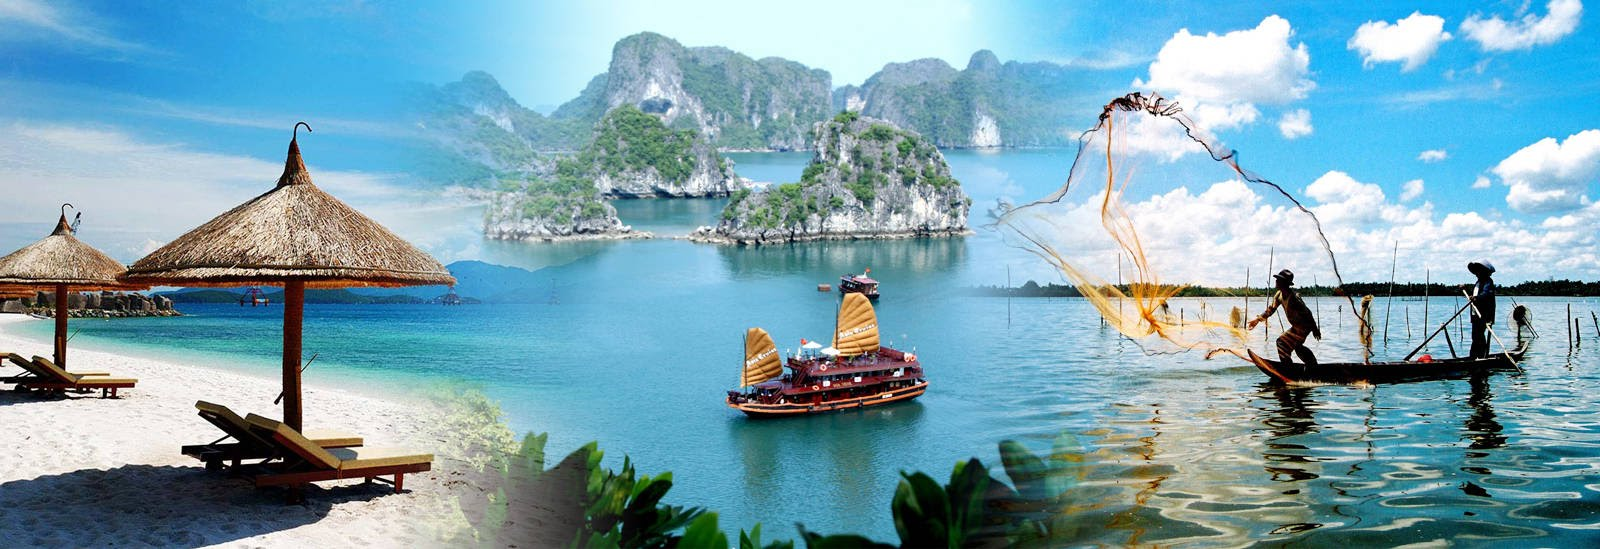 Vietnam's tourism to become a spearhead economic sector Current Affairs